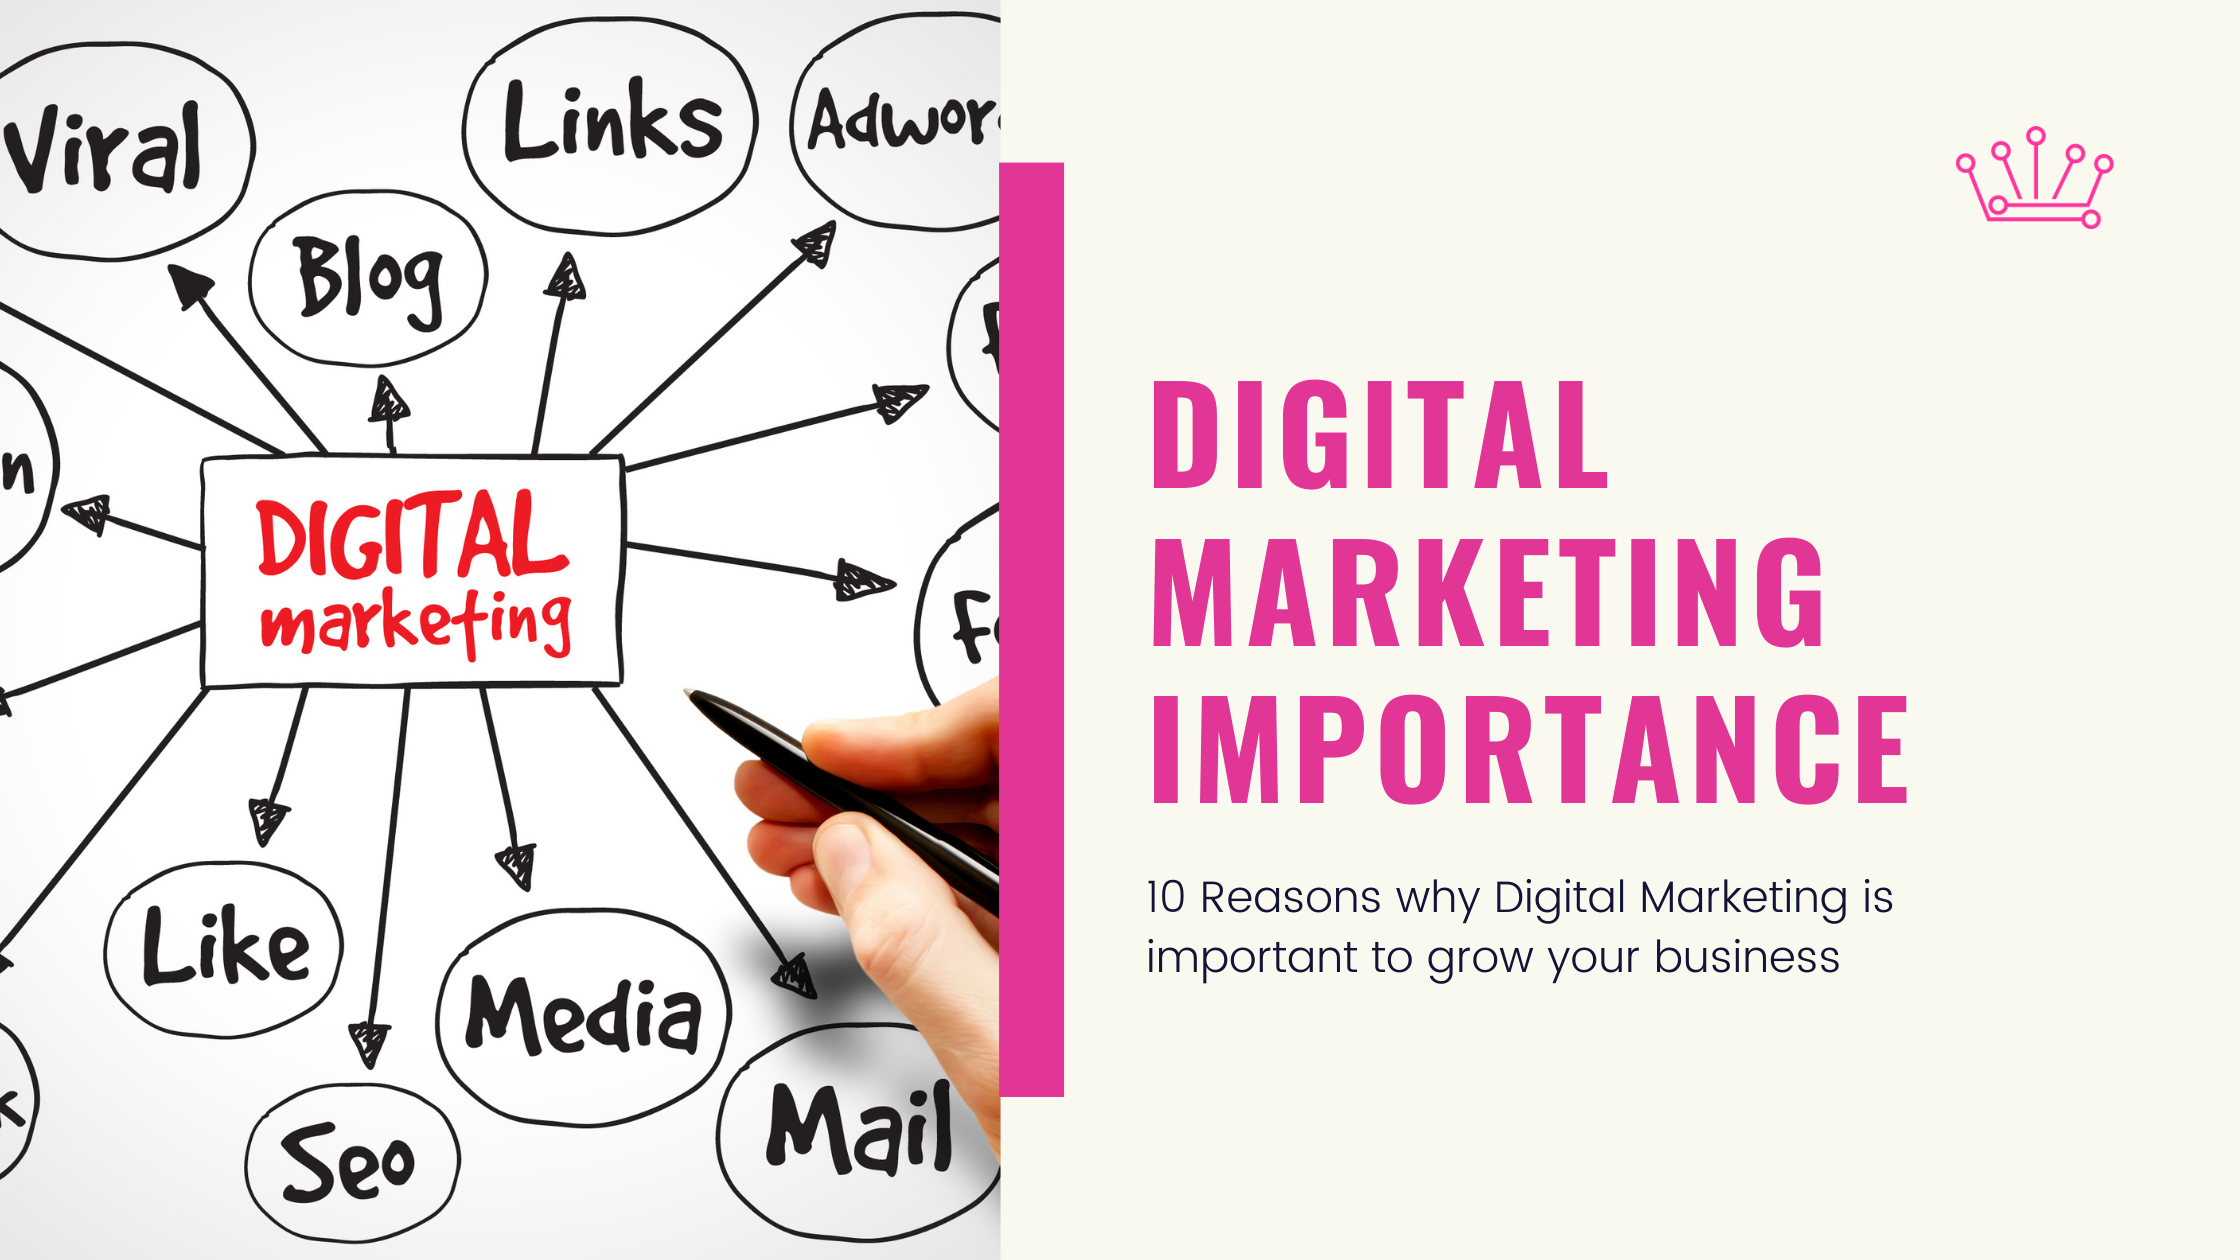 10 Reasons why Digital Marketing is important to grow your business